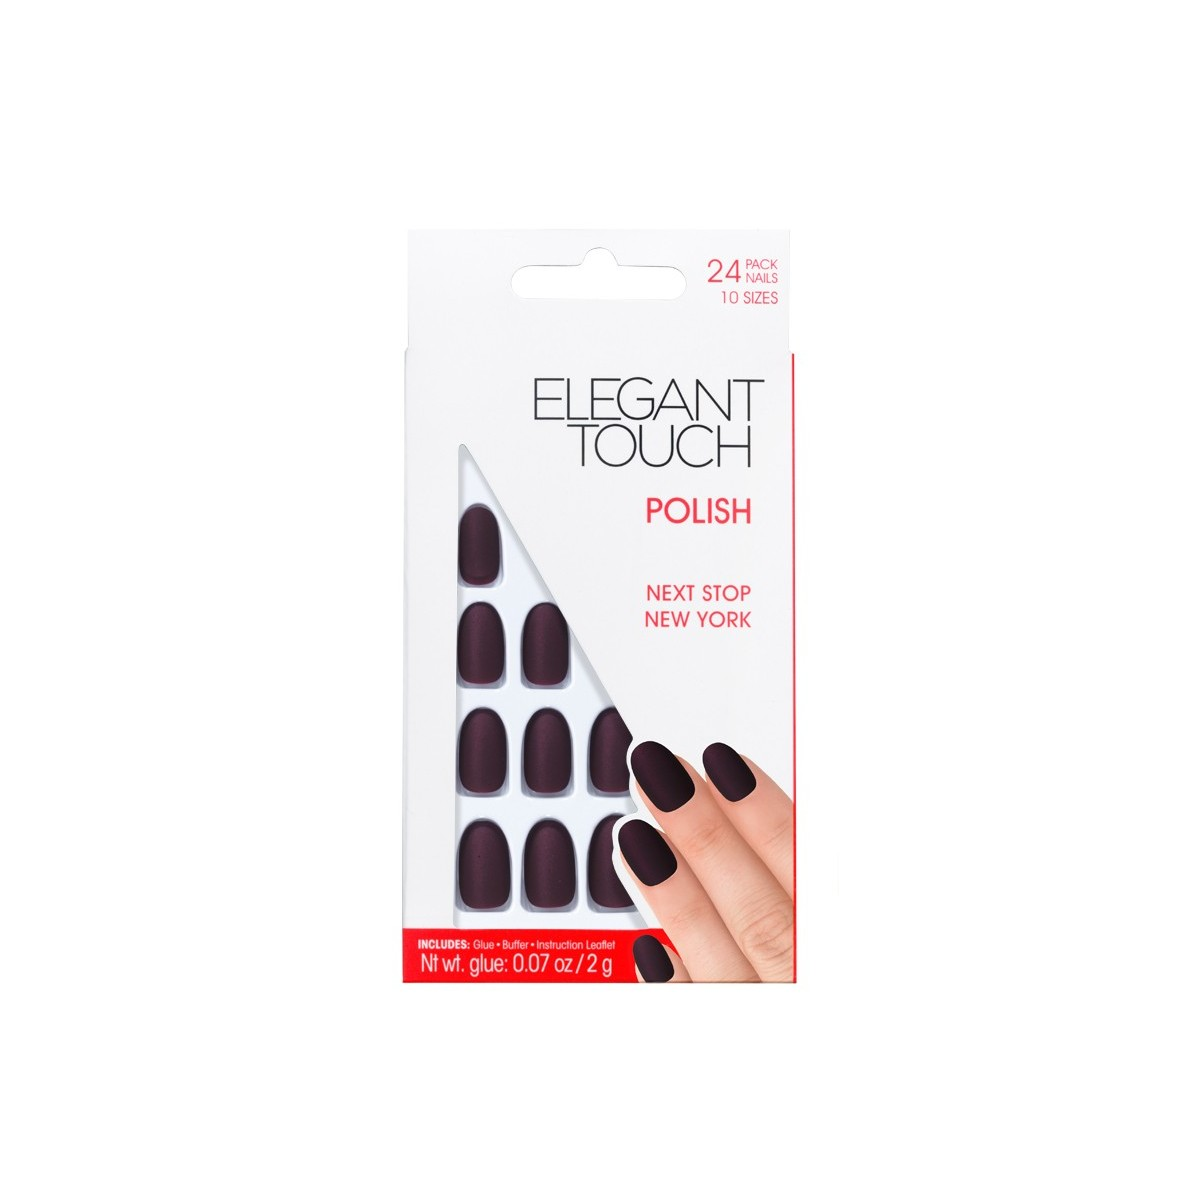 Faux-Ongles Polished - Next Stop New York Elegant Touch 1